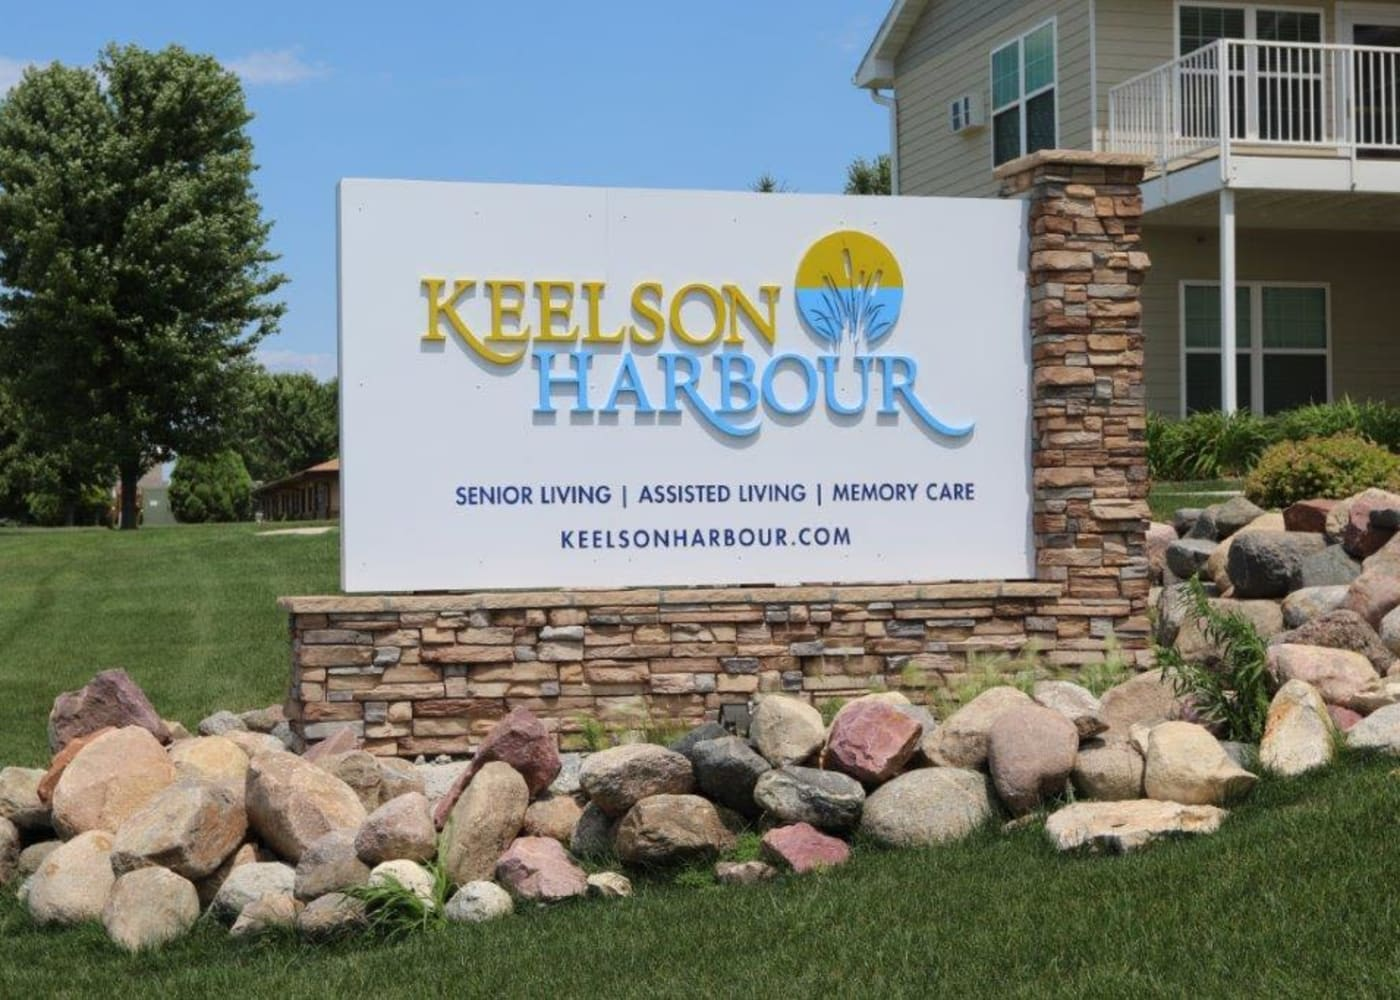 Signage on the lawn at Keelson Harbour in Spirit Lake, Iowa.